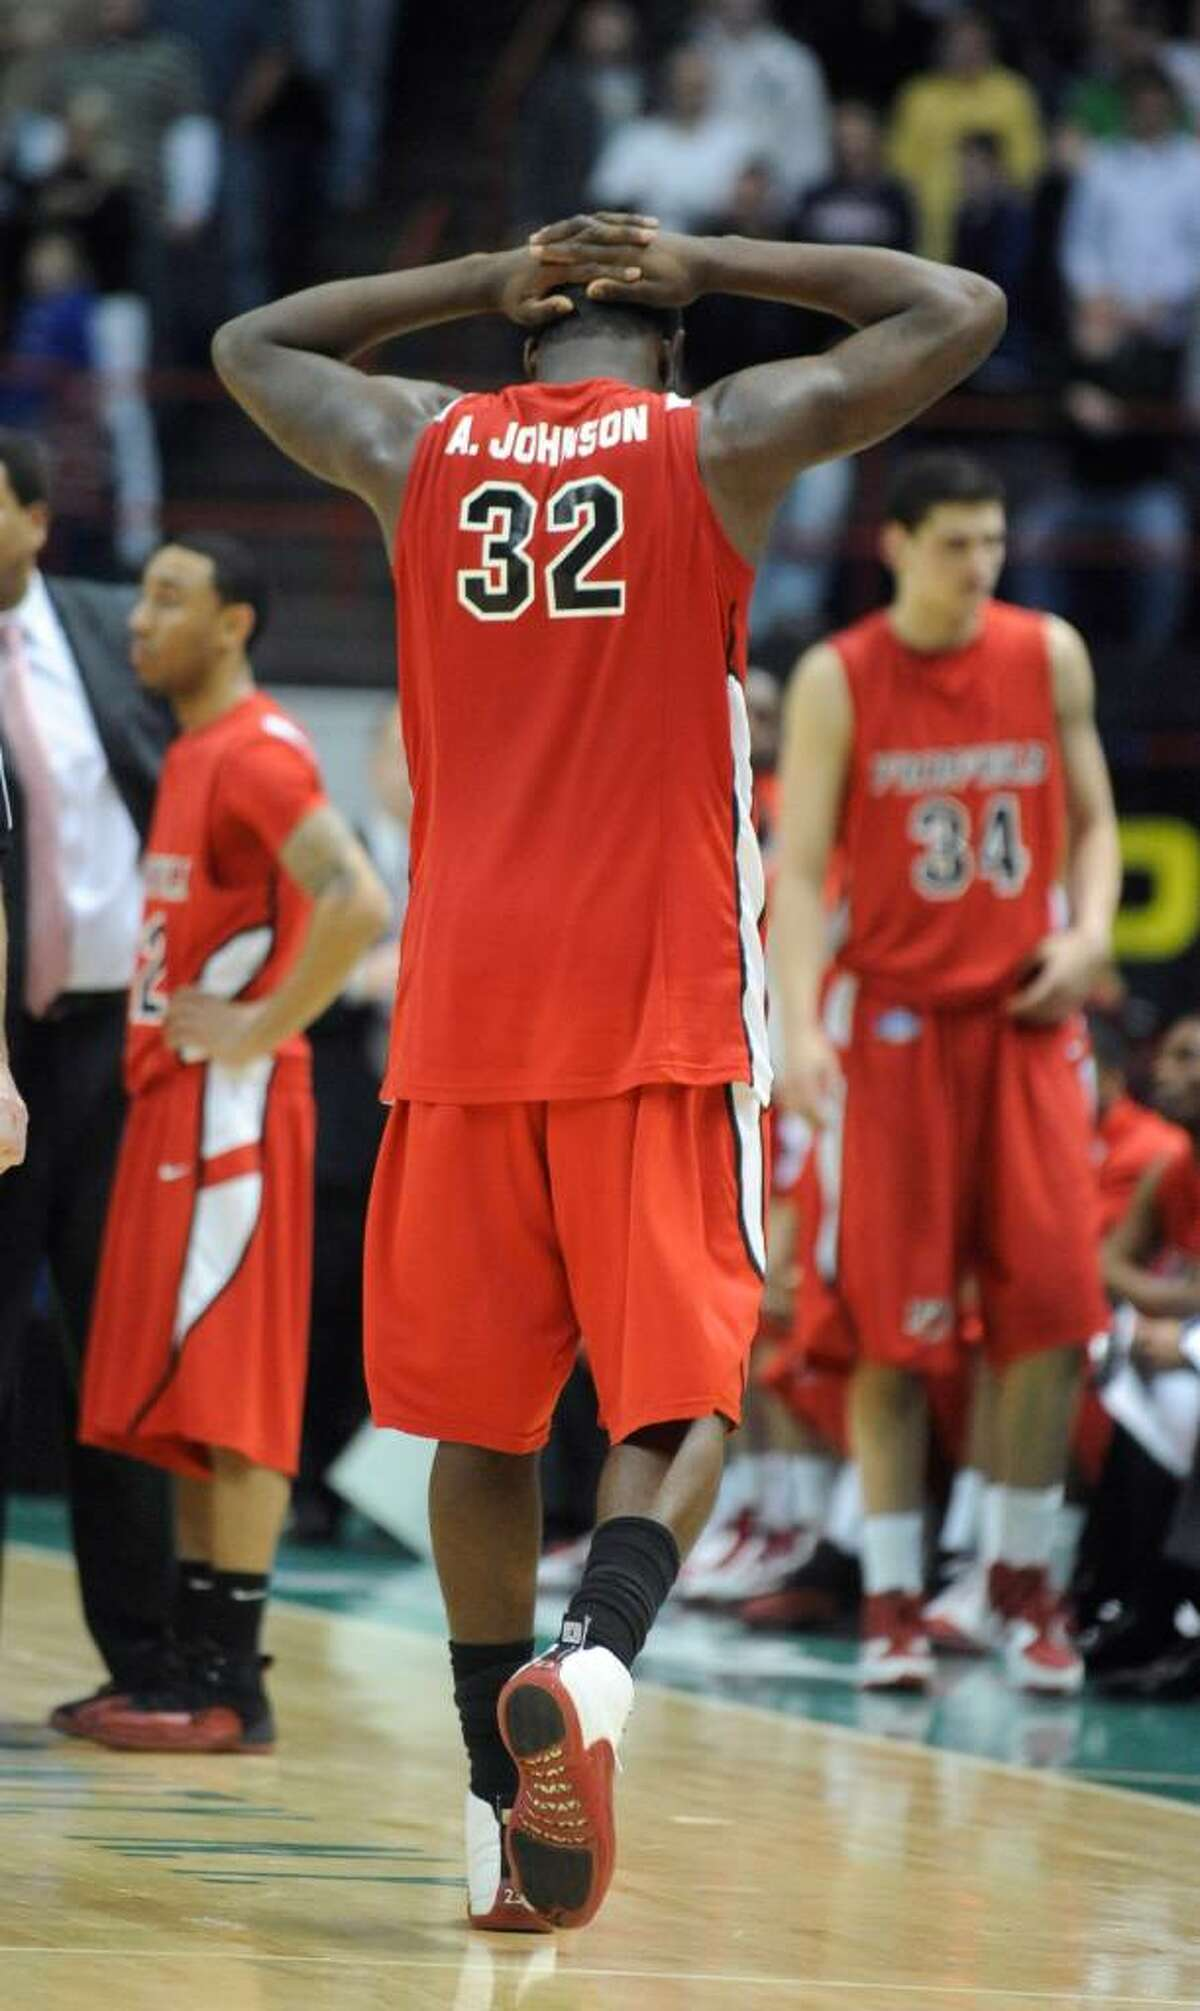 Fairfield's Anthony Johnson reacts in the closing moments of a loss to Siena in the championship game of the NCAA Metro Atlantic Athletic Conference men's college basketball tournament in Albany, N.Y., on Monday, March 8, 2010. (AP Photo/Tim Roske)